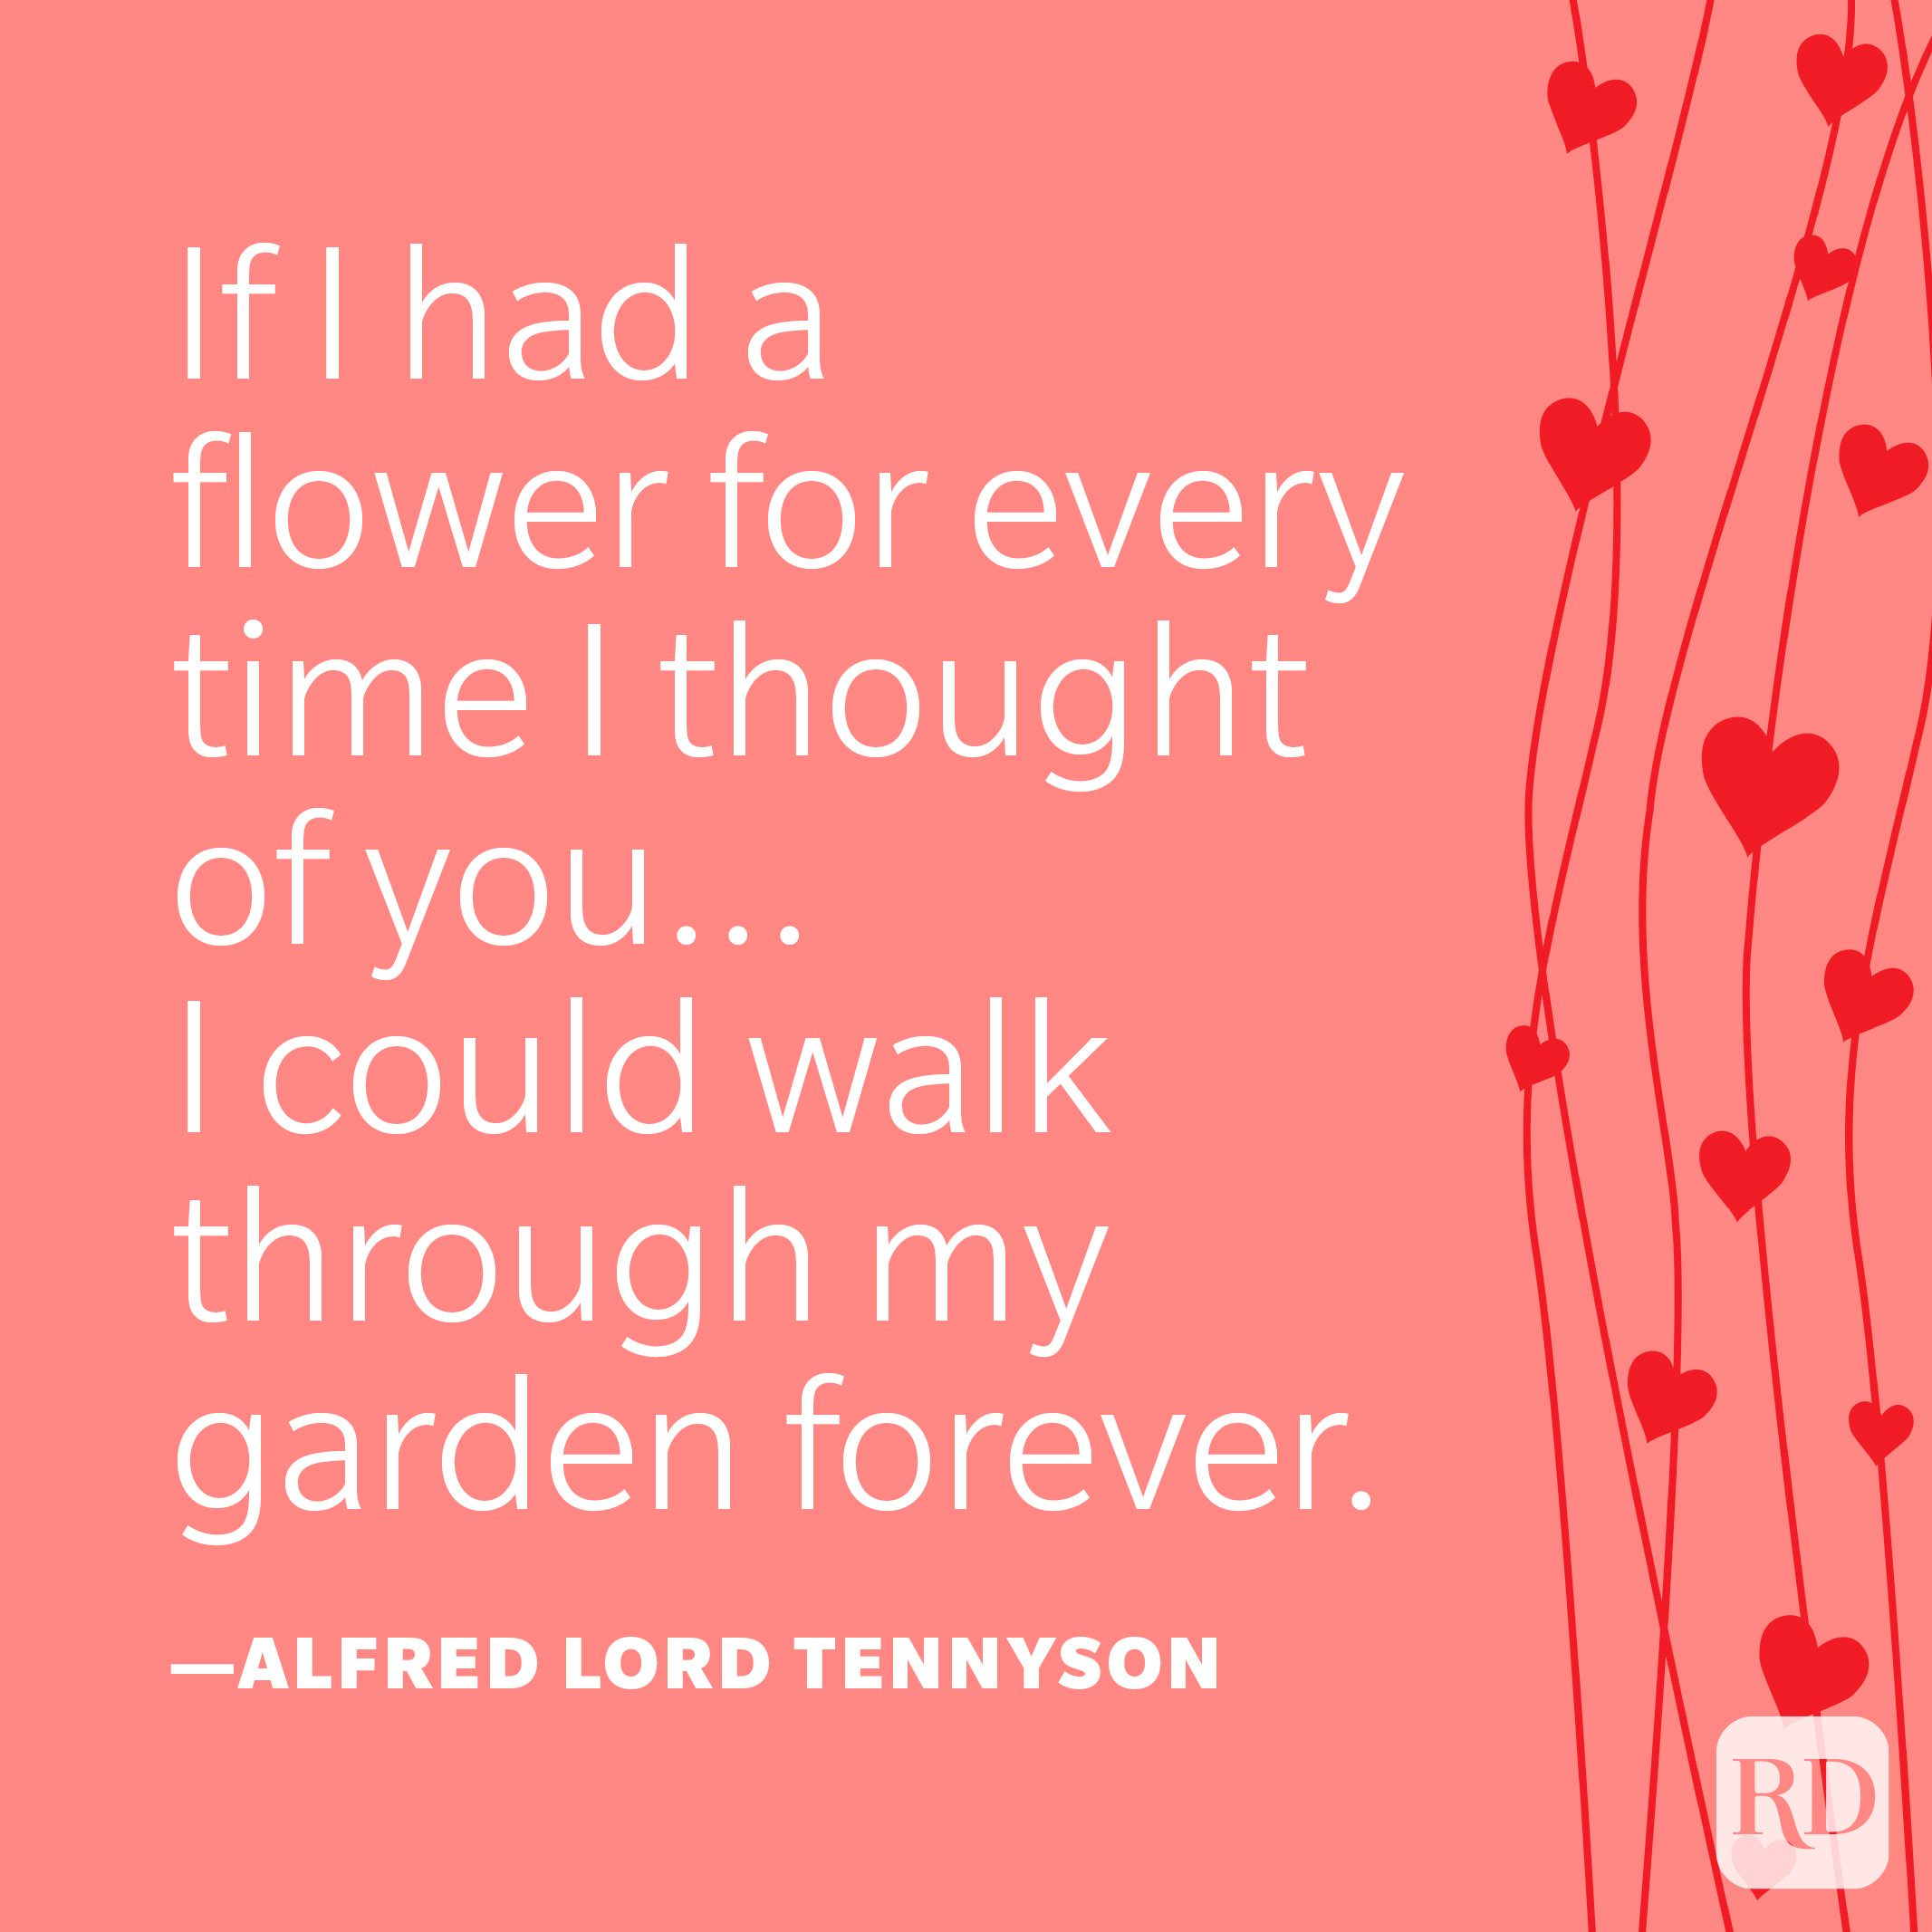 """""""If I had a flower for every time I thought of you...I could walk through my garden forever."""" —Alfred Lord Tennyson"""